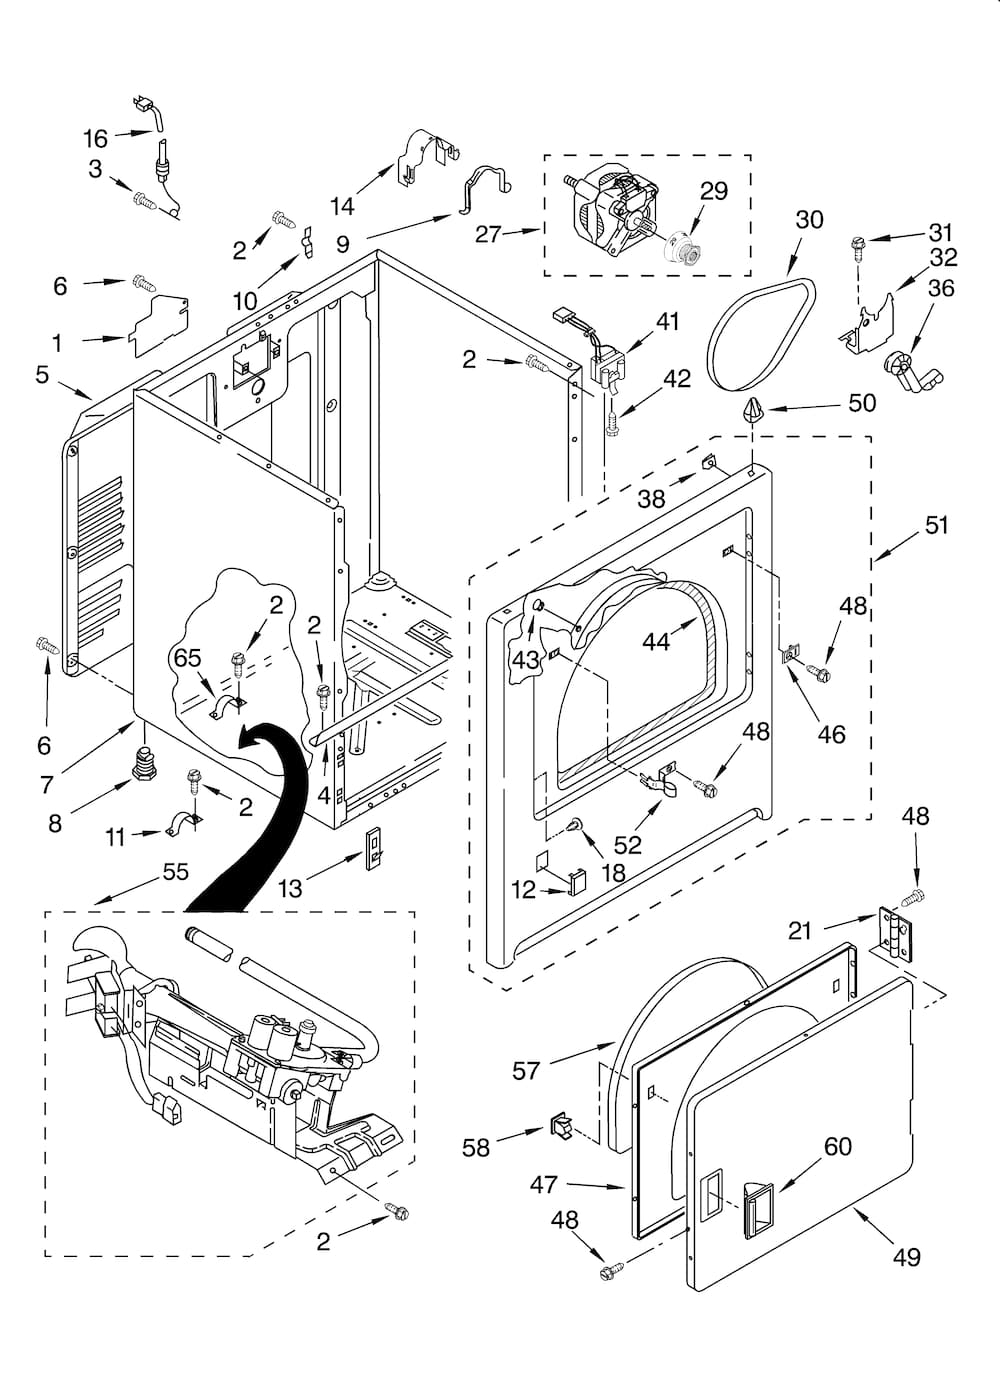 generous 917270760 craftsman wiring diagram model ideas wiring diagram for stereo 04 galant  Mercury Tilt Trim Wiring Diagram Diagram for HVAC wiring diagram for stereo in 2009 chevy 1500